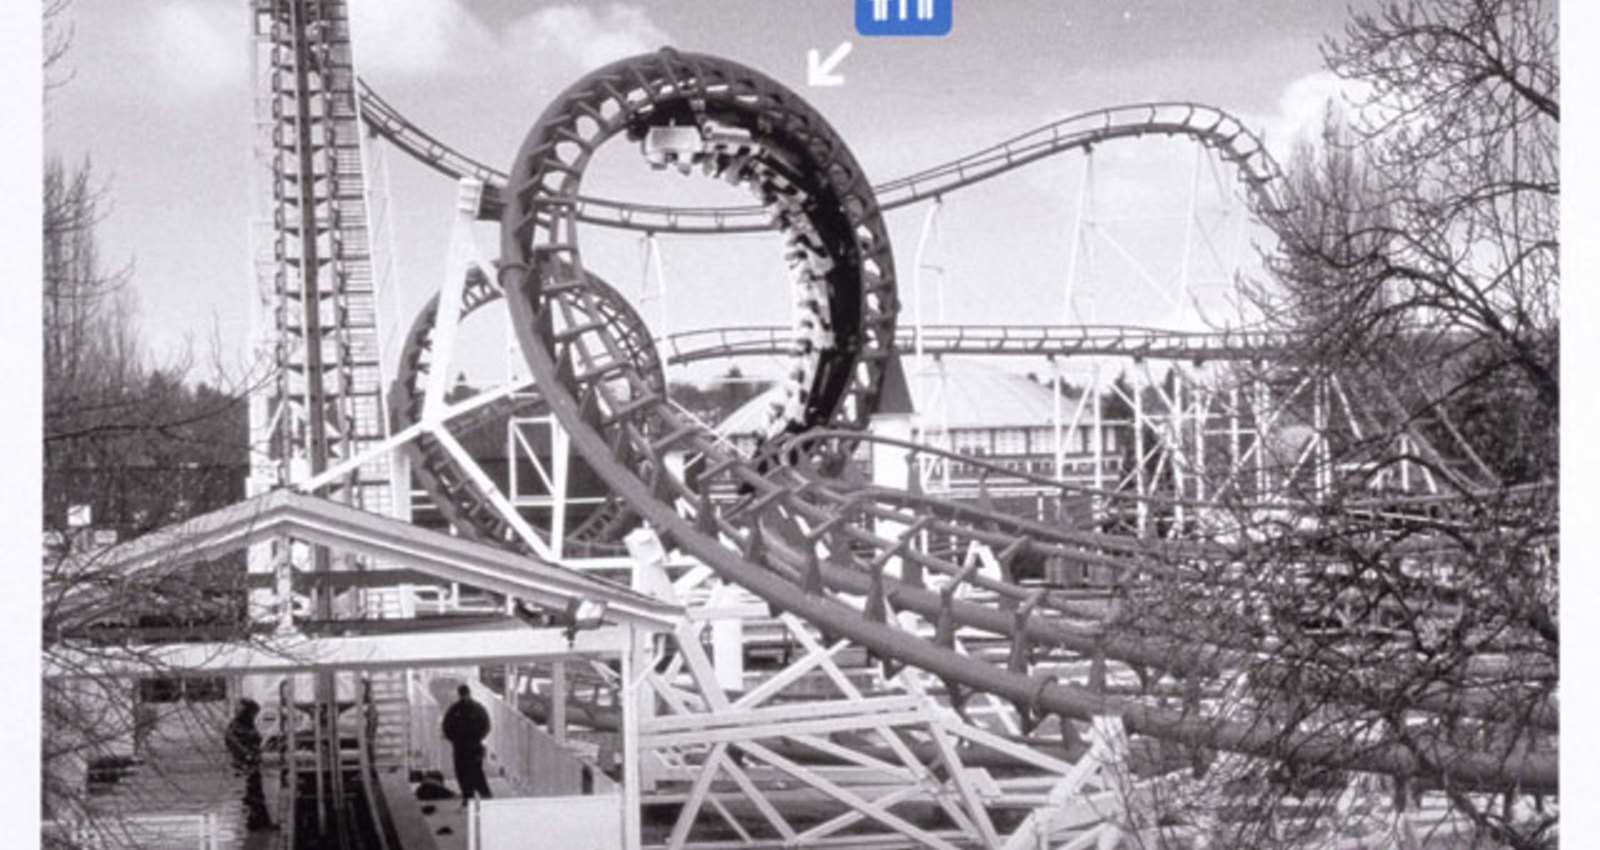 Coaster, Corkscrew, Revelation